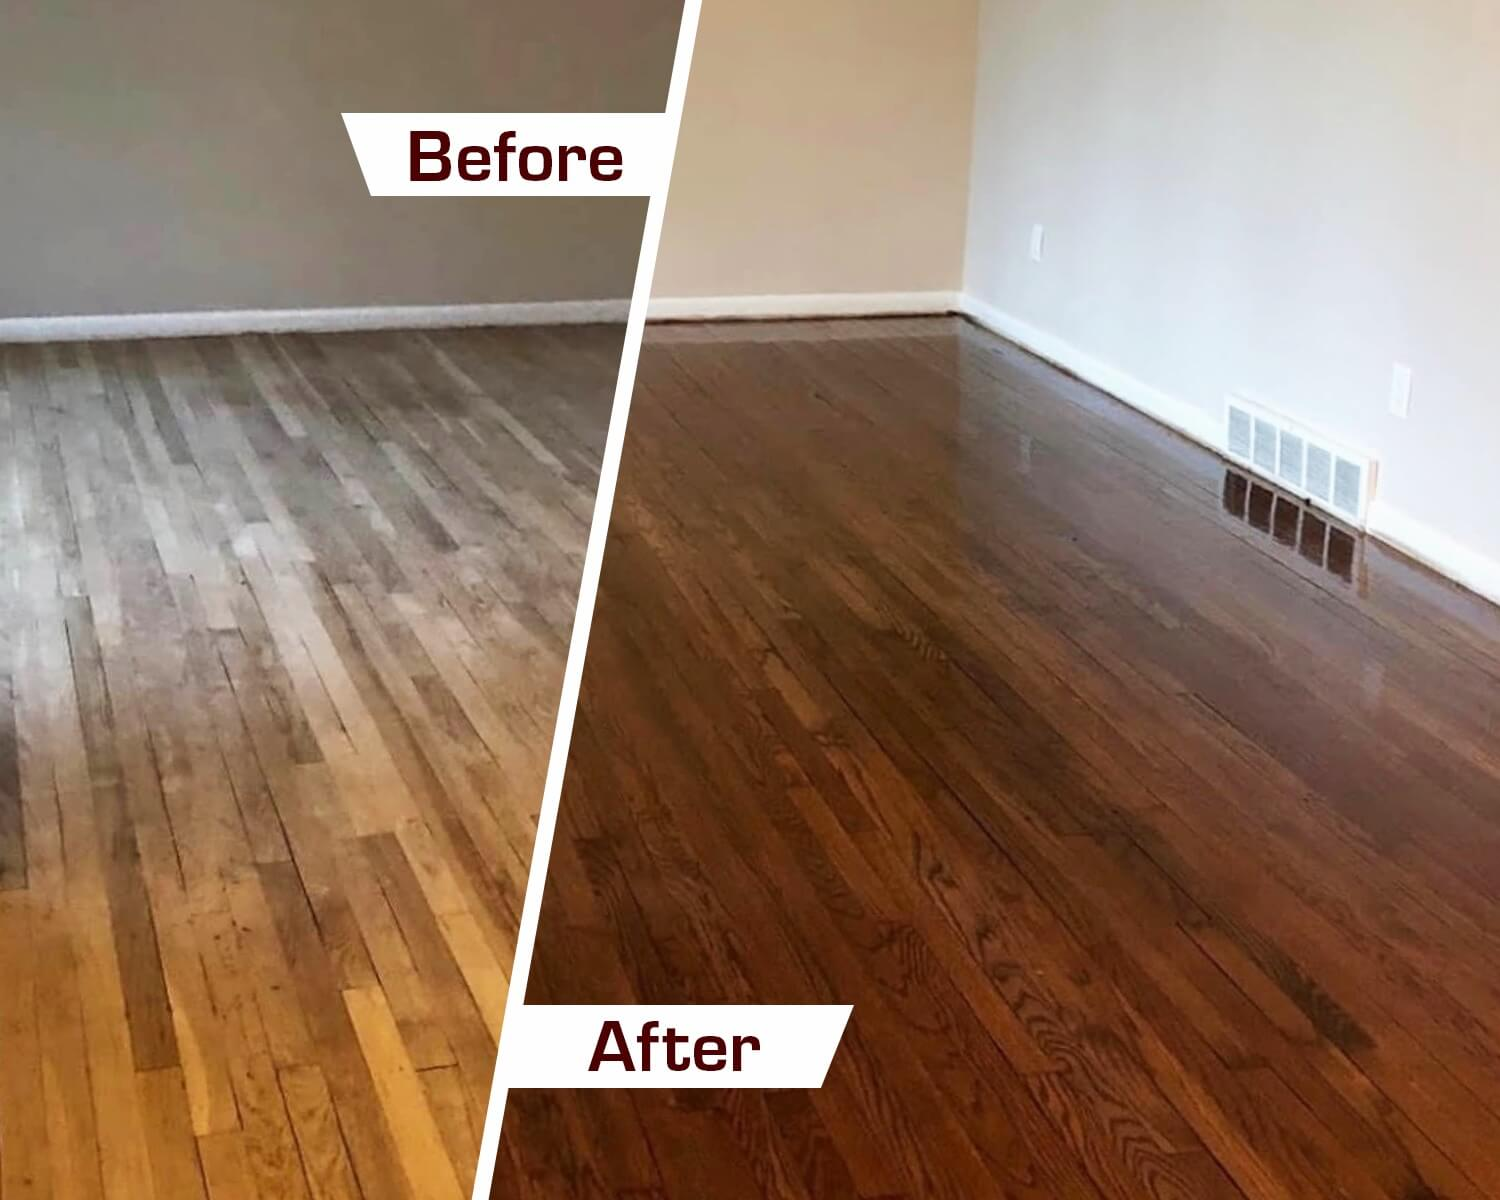 milwaukee before and after hardwood floor refinishing